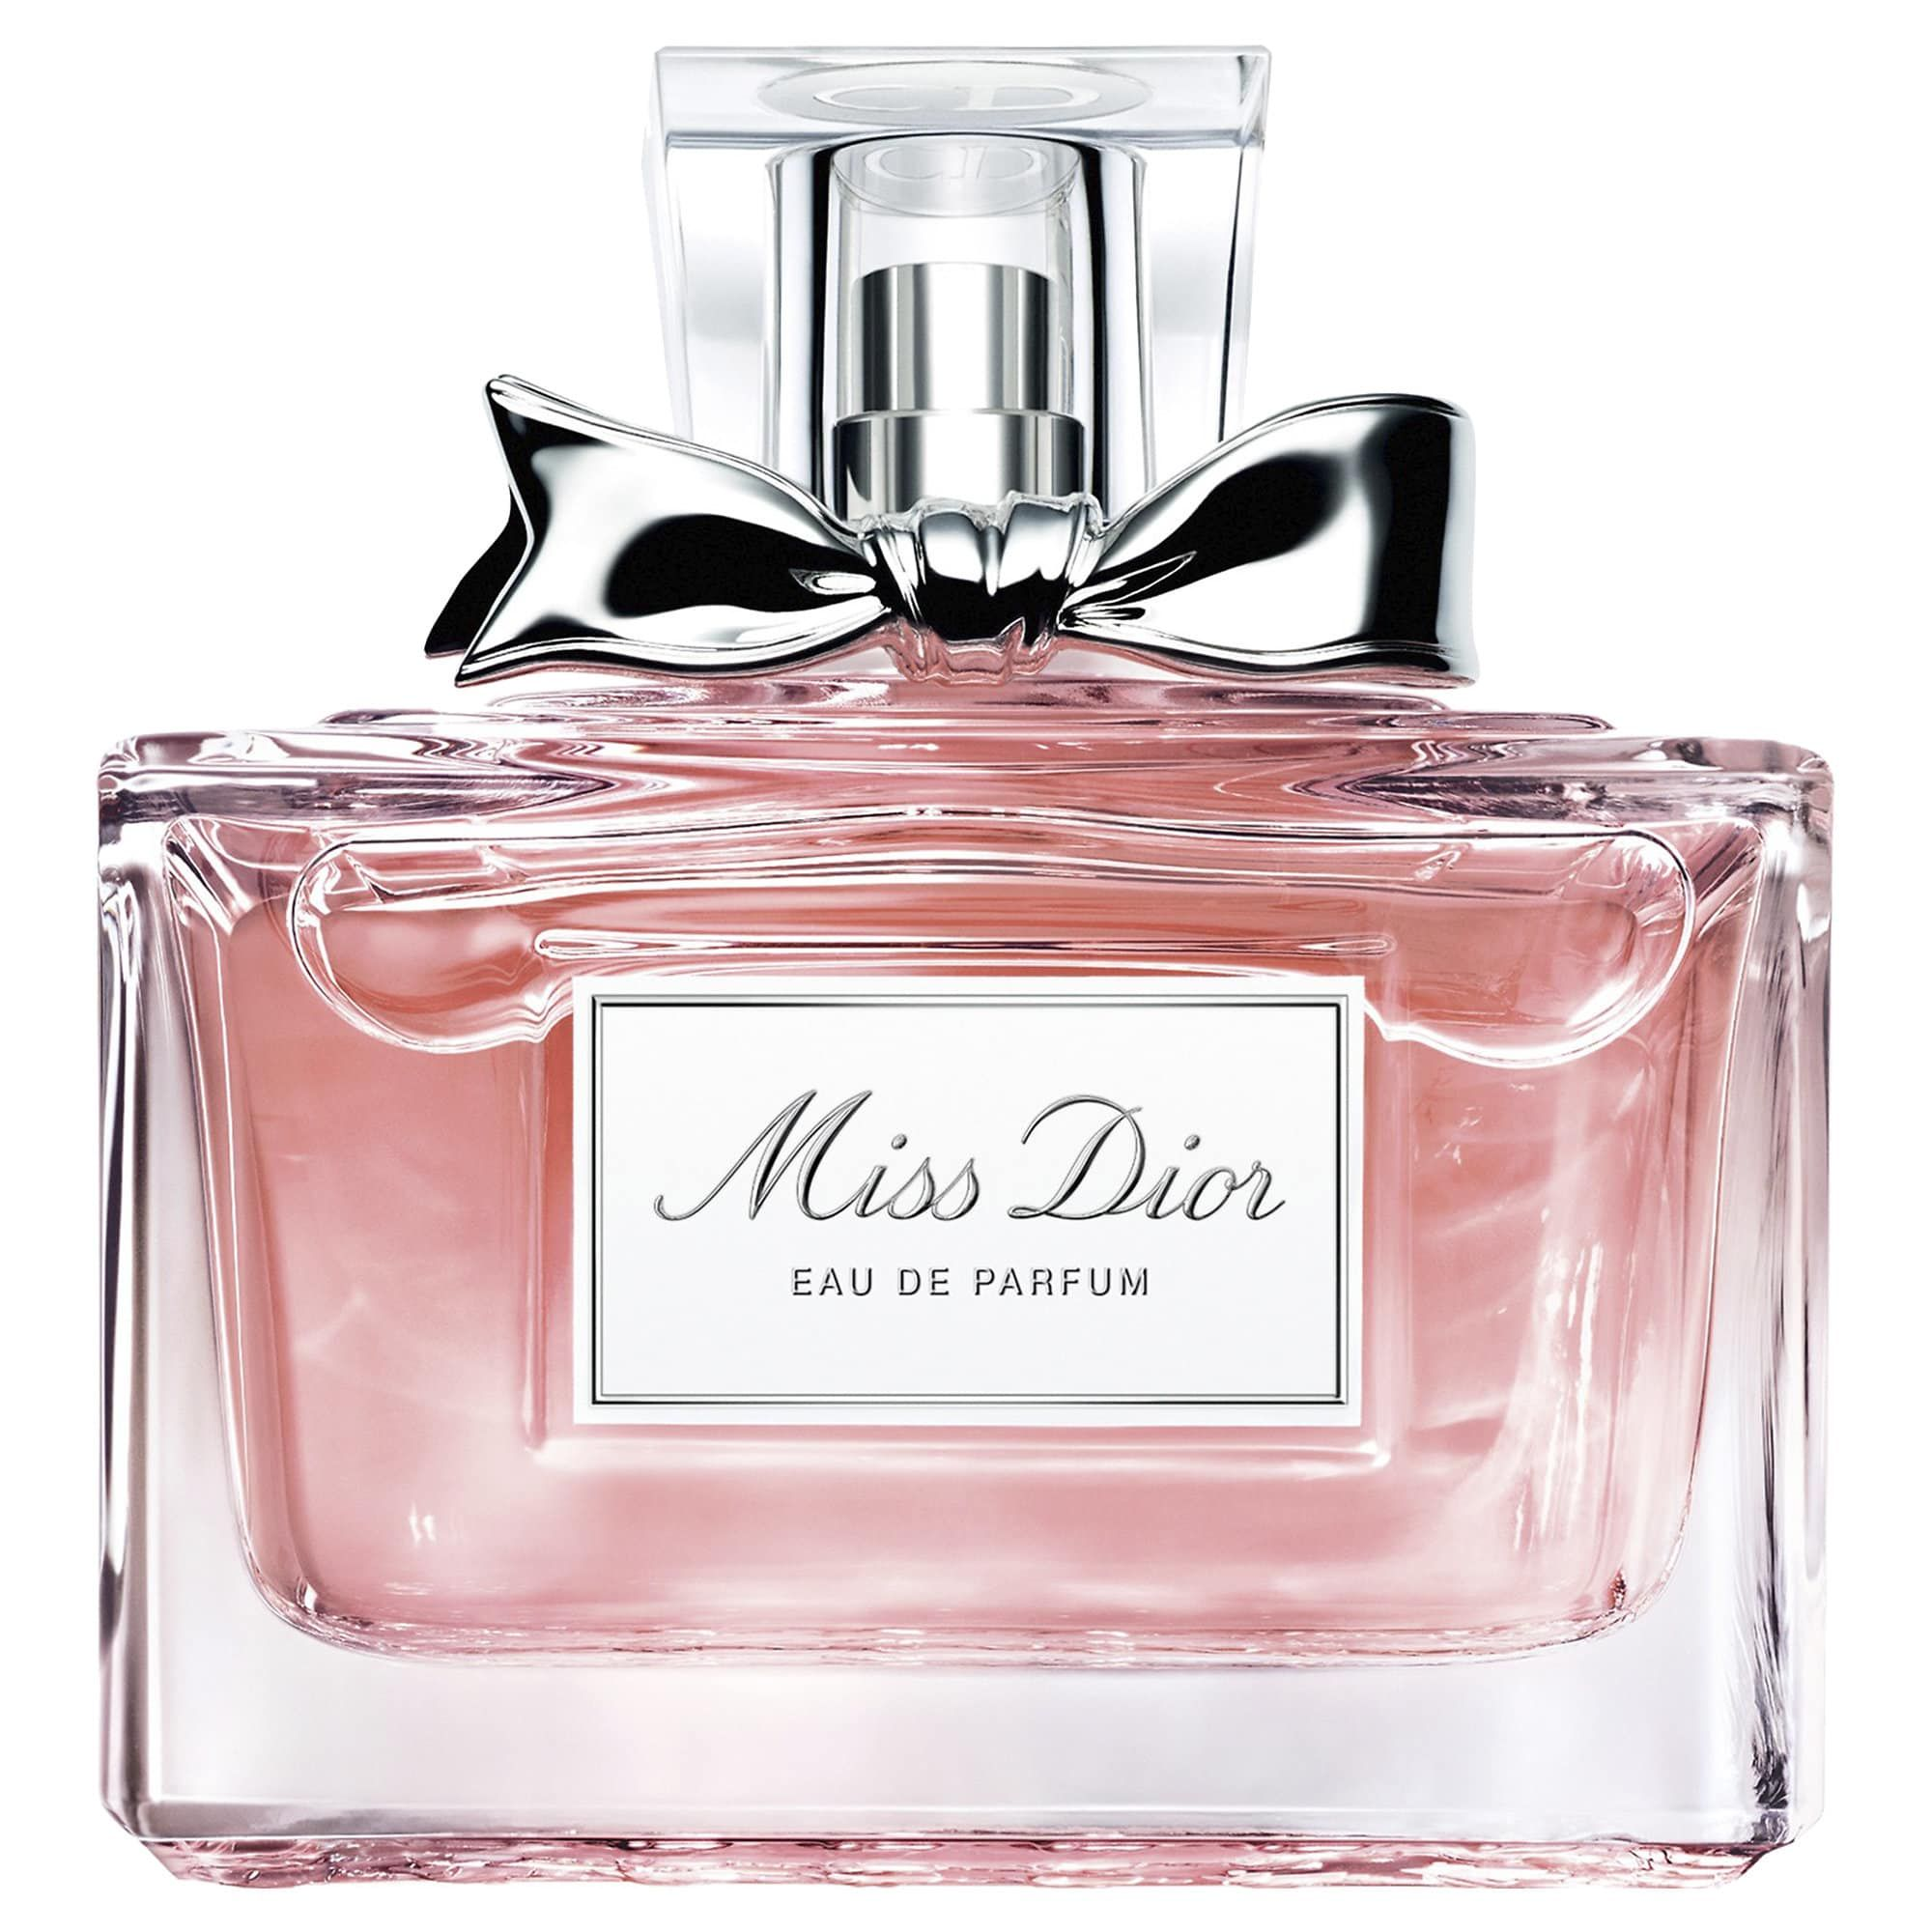 fc064c0f Dior Miss Dior Eau de Parfum 3.4 oz/ 100 mL Eau de Parfum Spray in ...